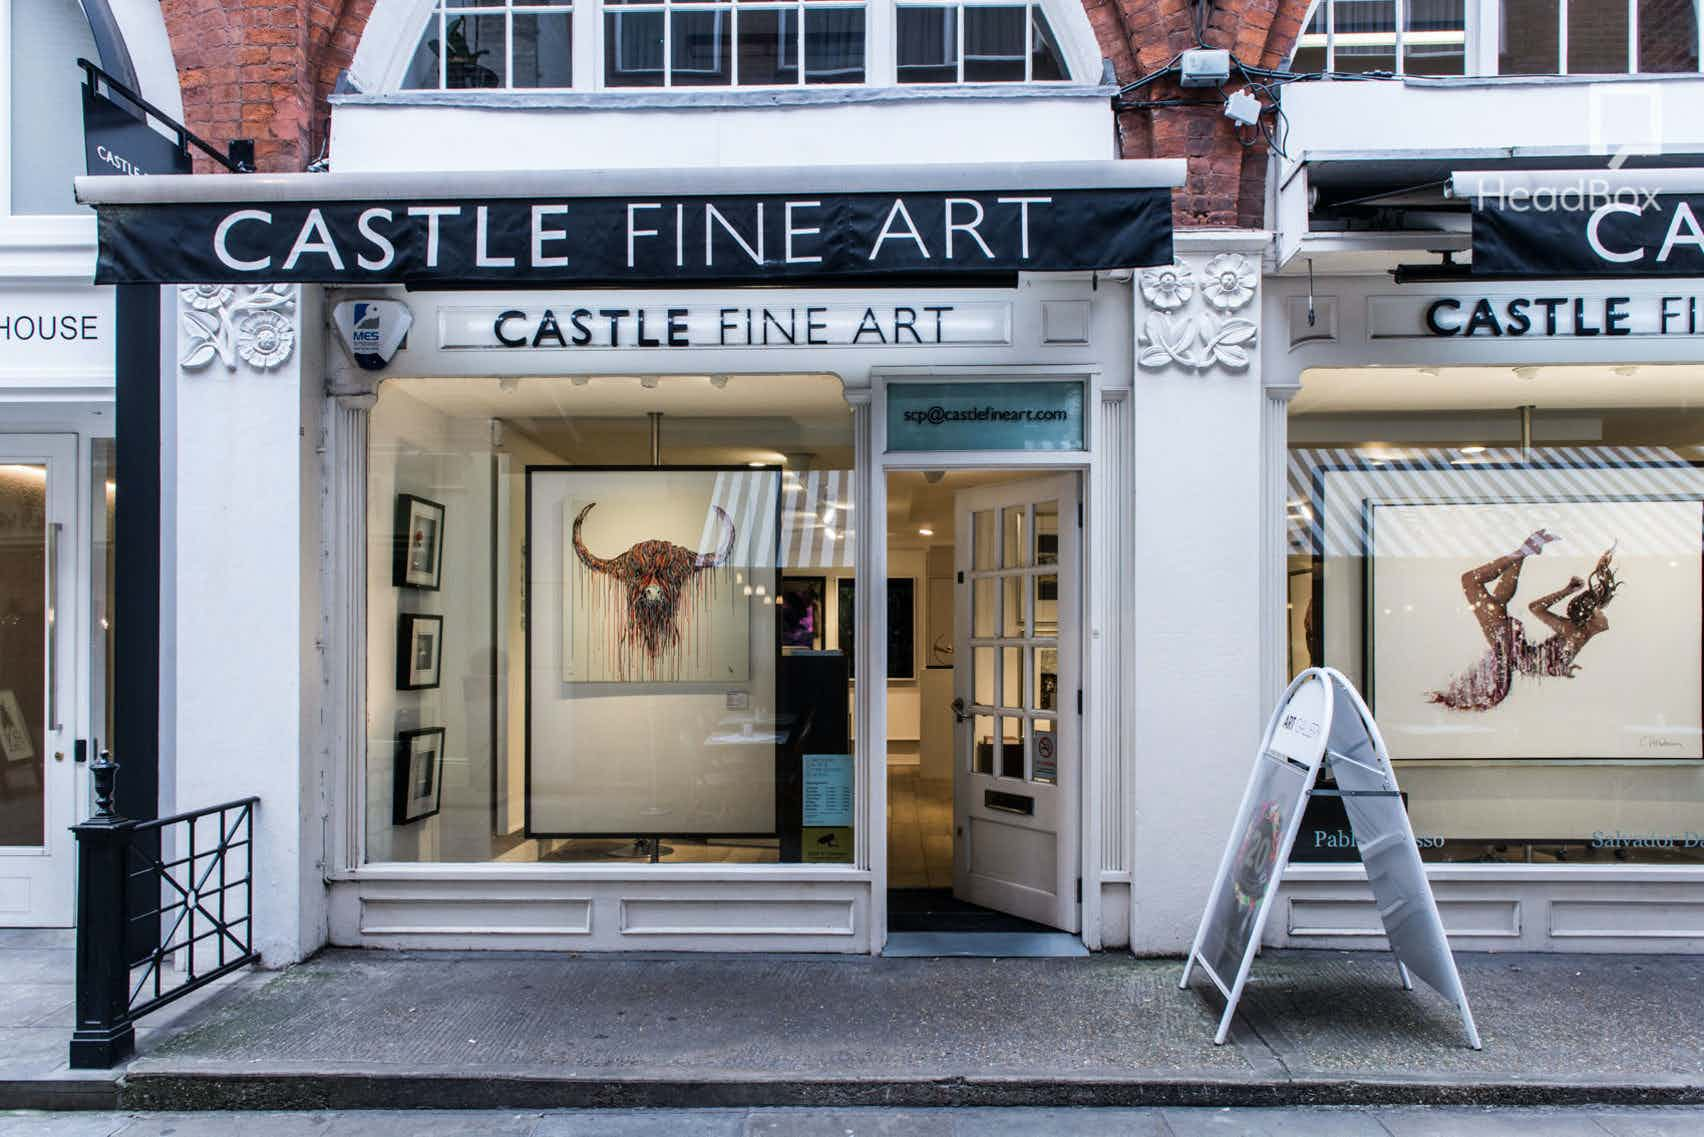 St Christophers Place Gallery, Castle Fine Art